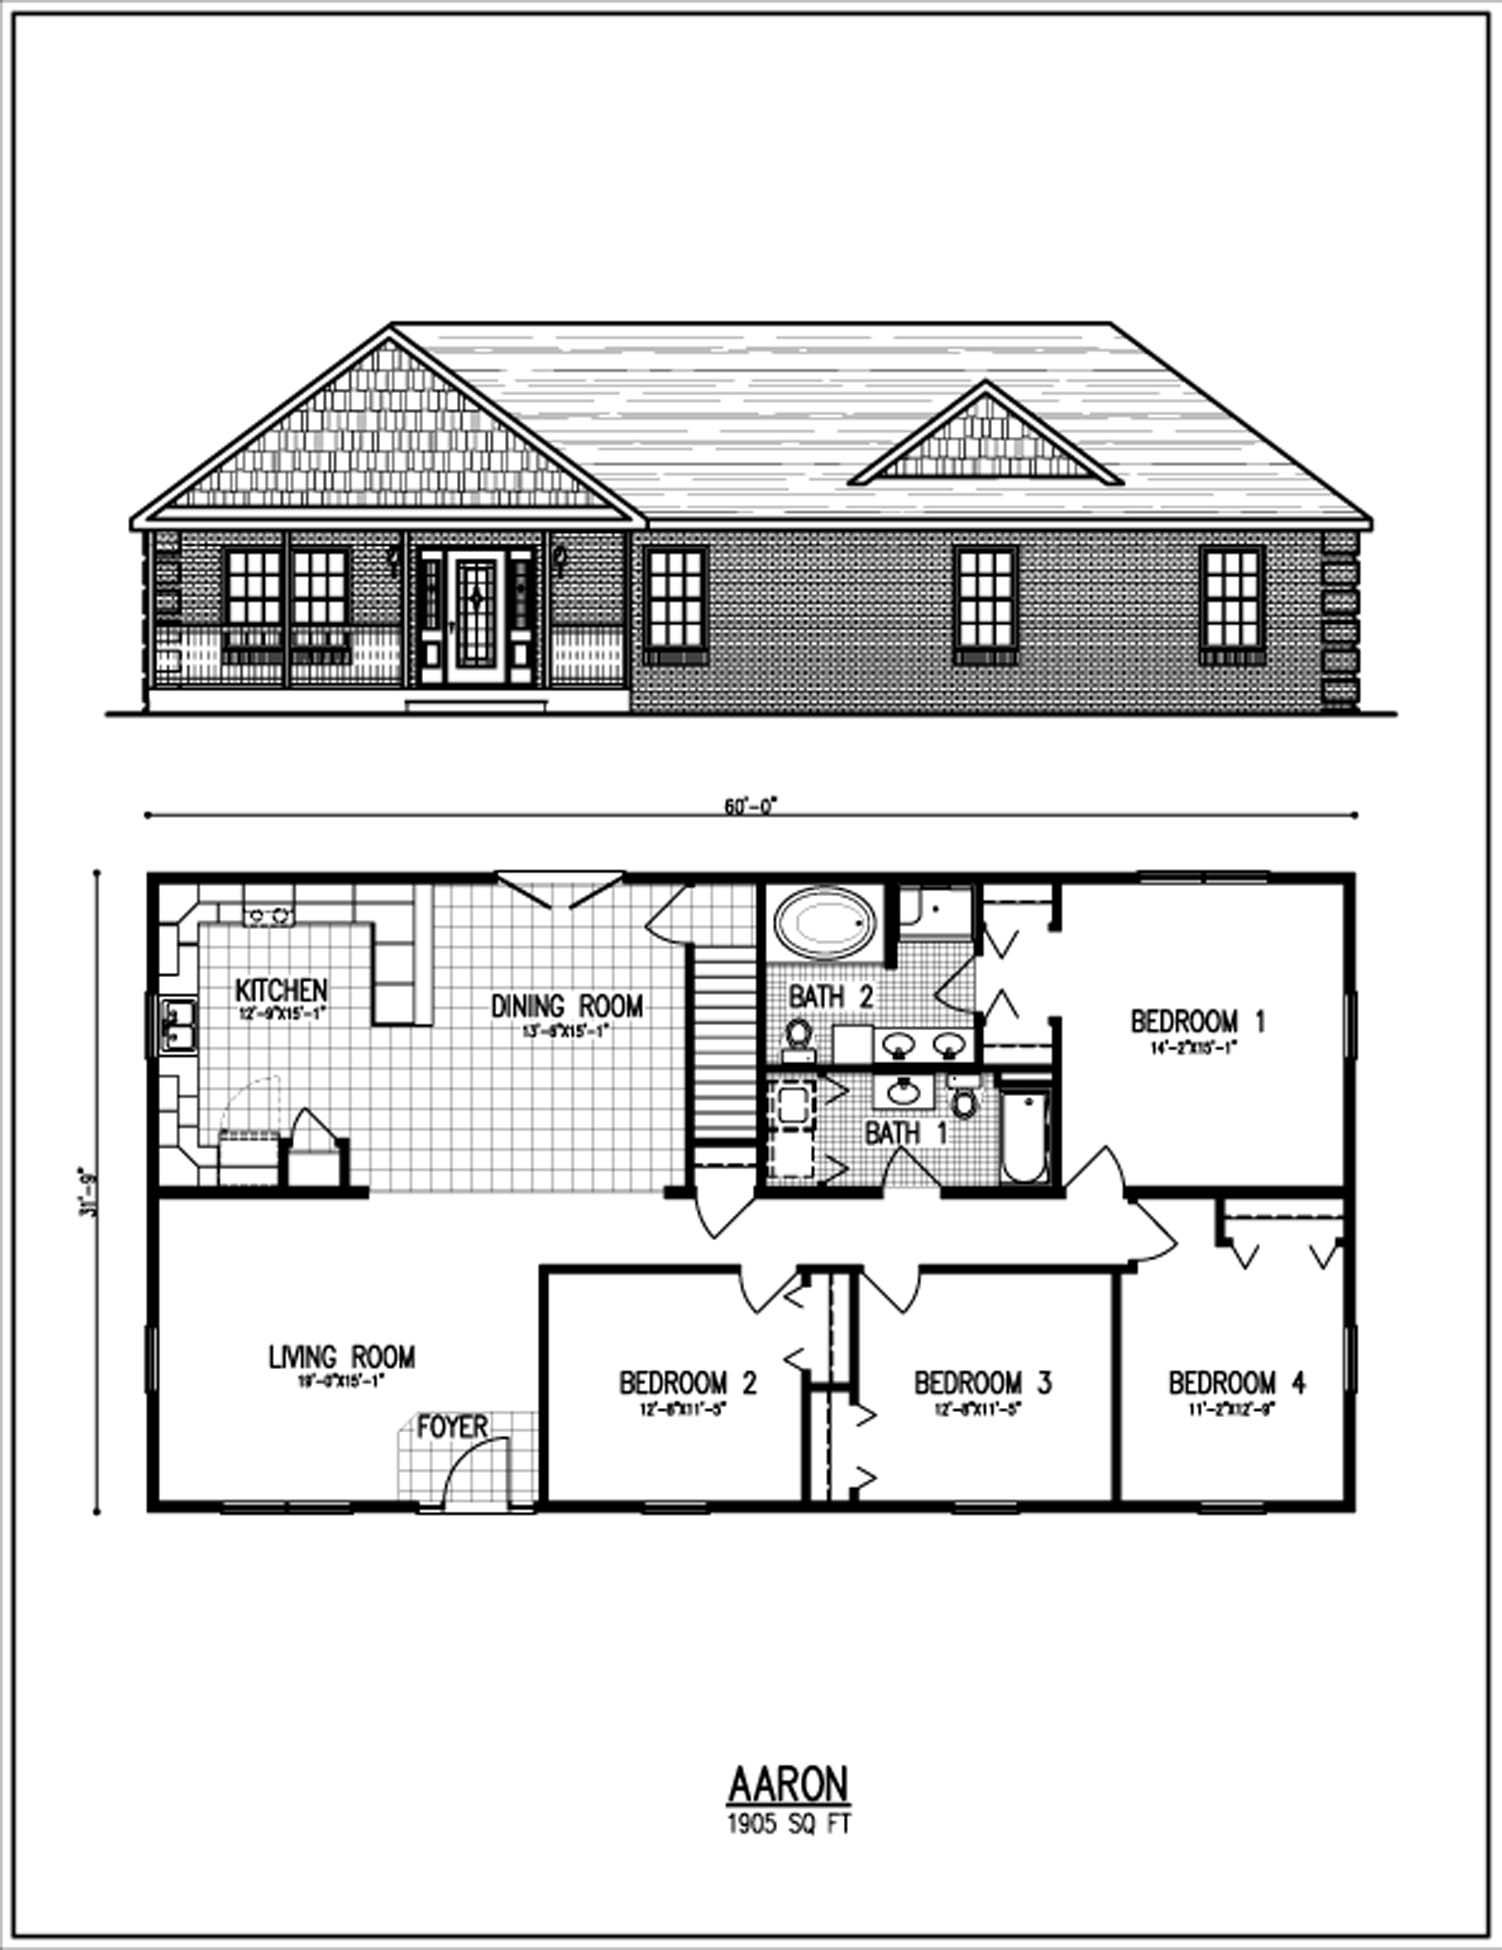 All american homes floorplan center staffordcape for Home design website free